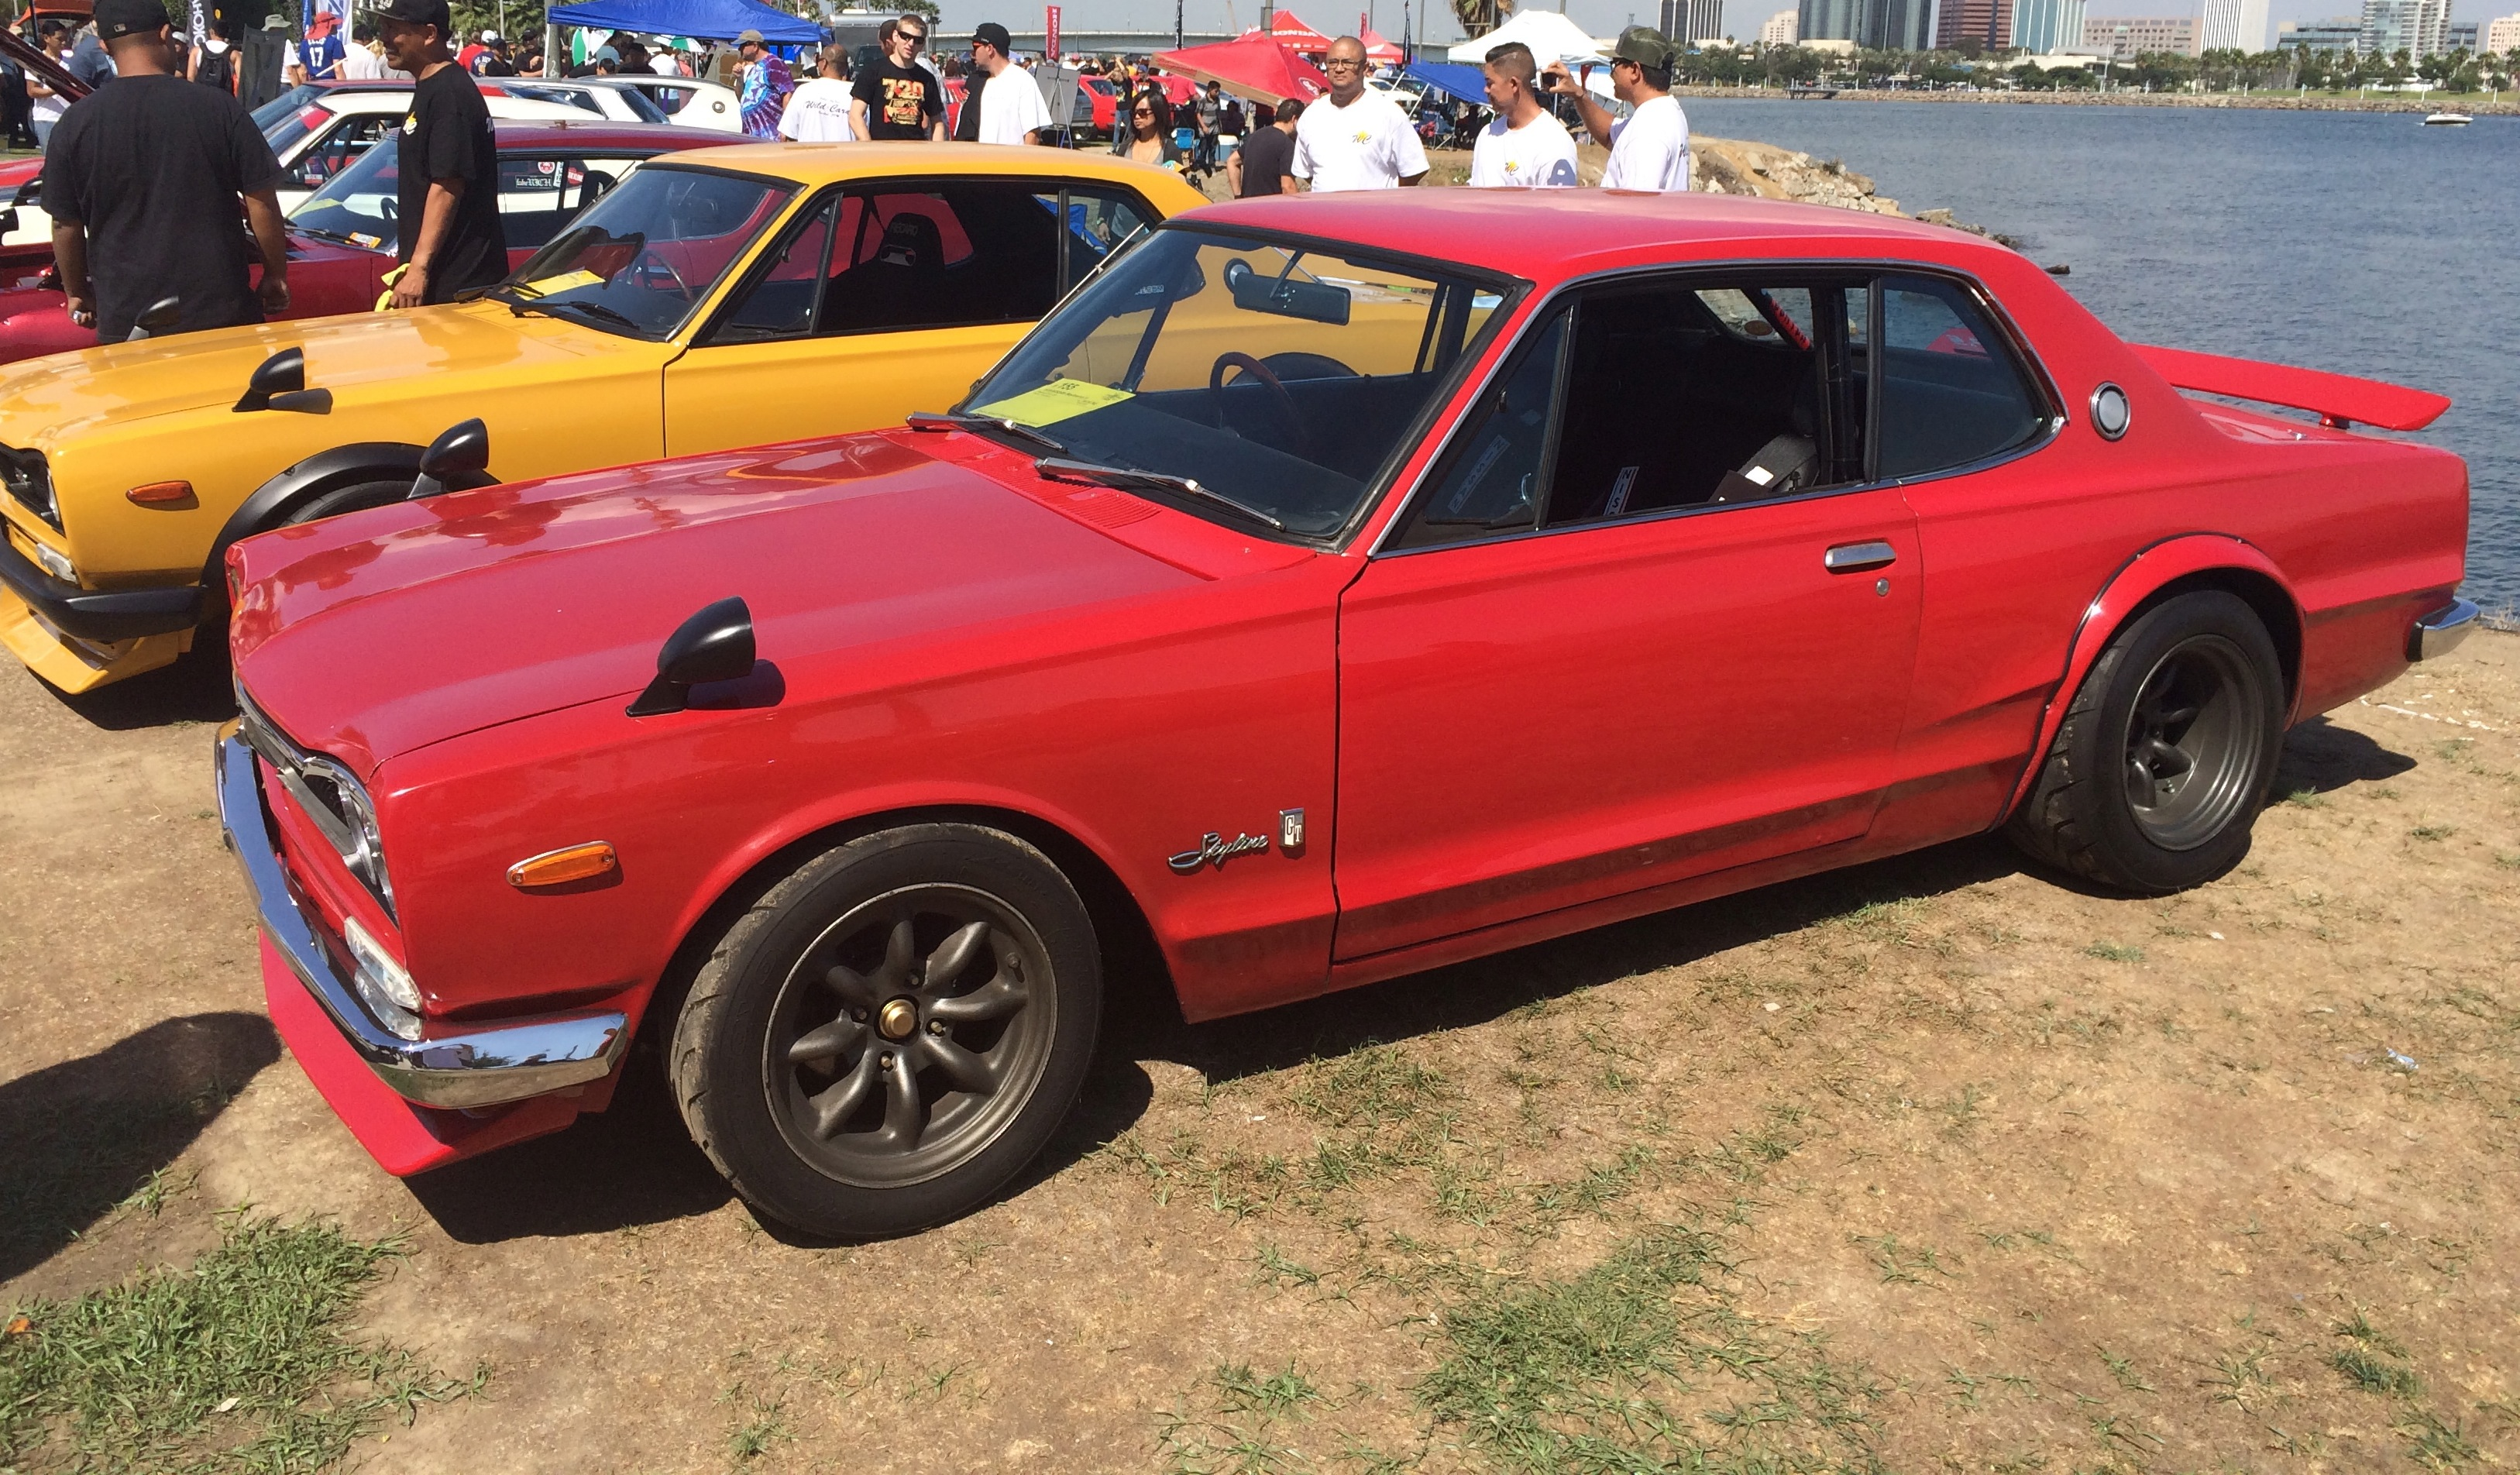 Japanese Classic Car Show 2014 - Rare Gems Shine in the ...